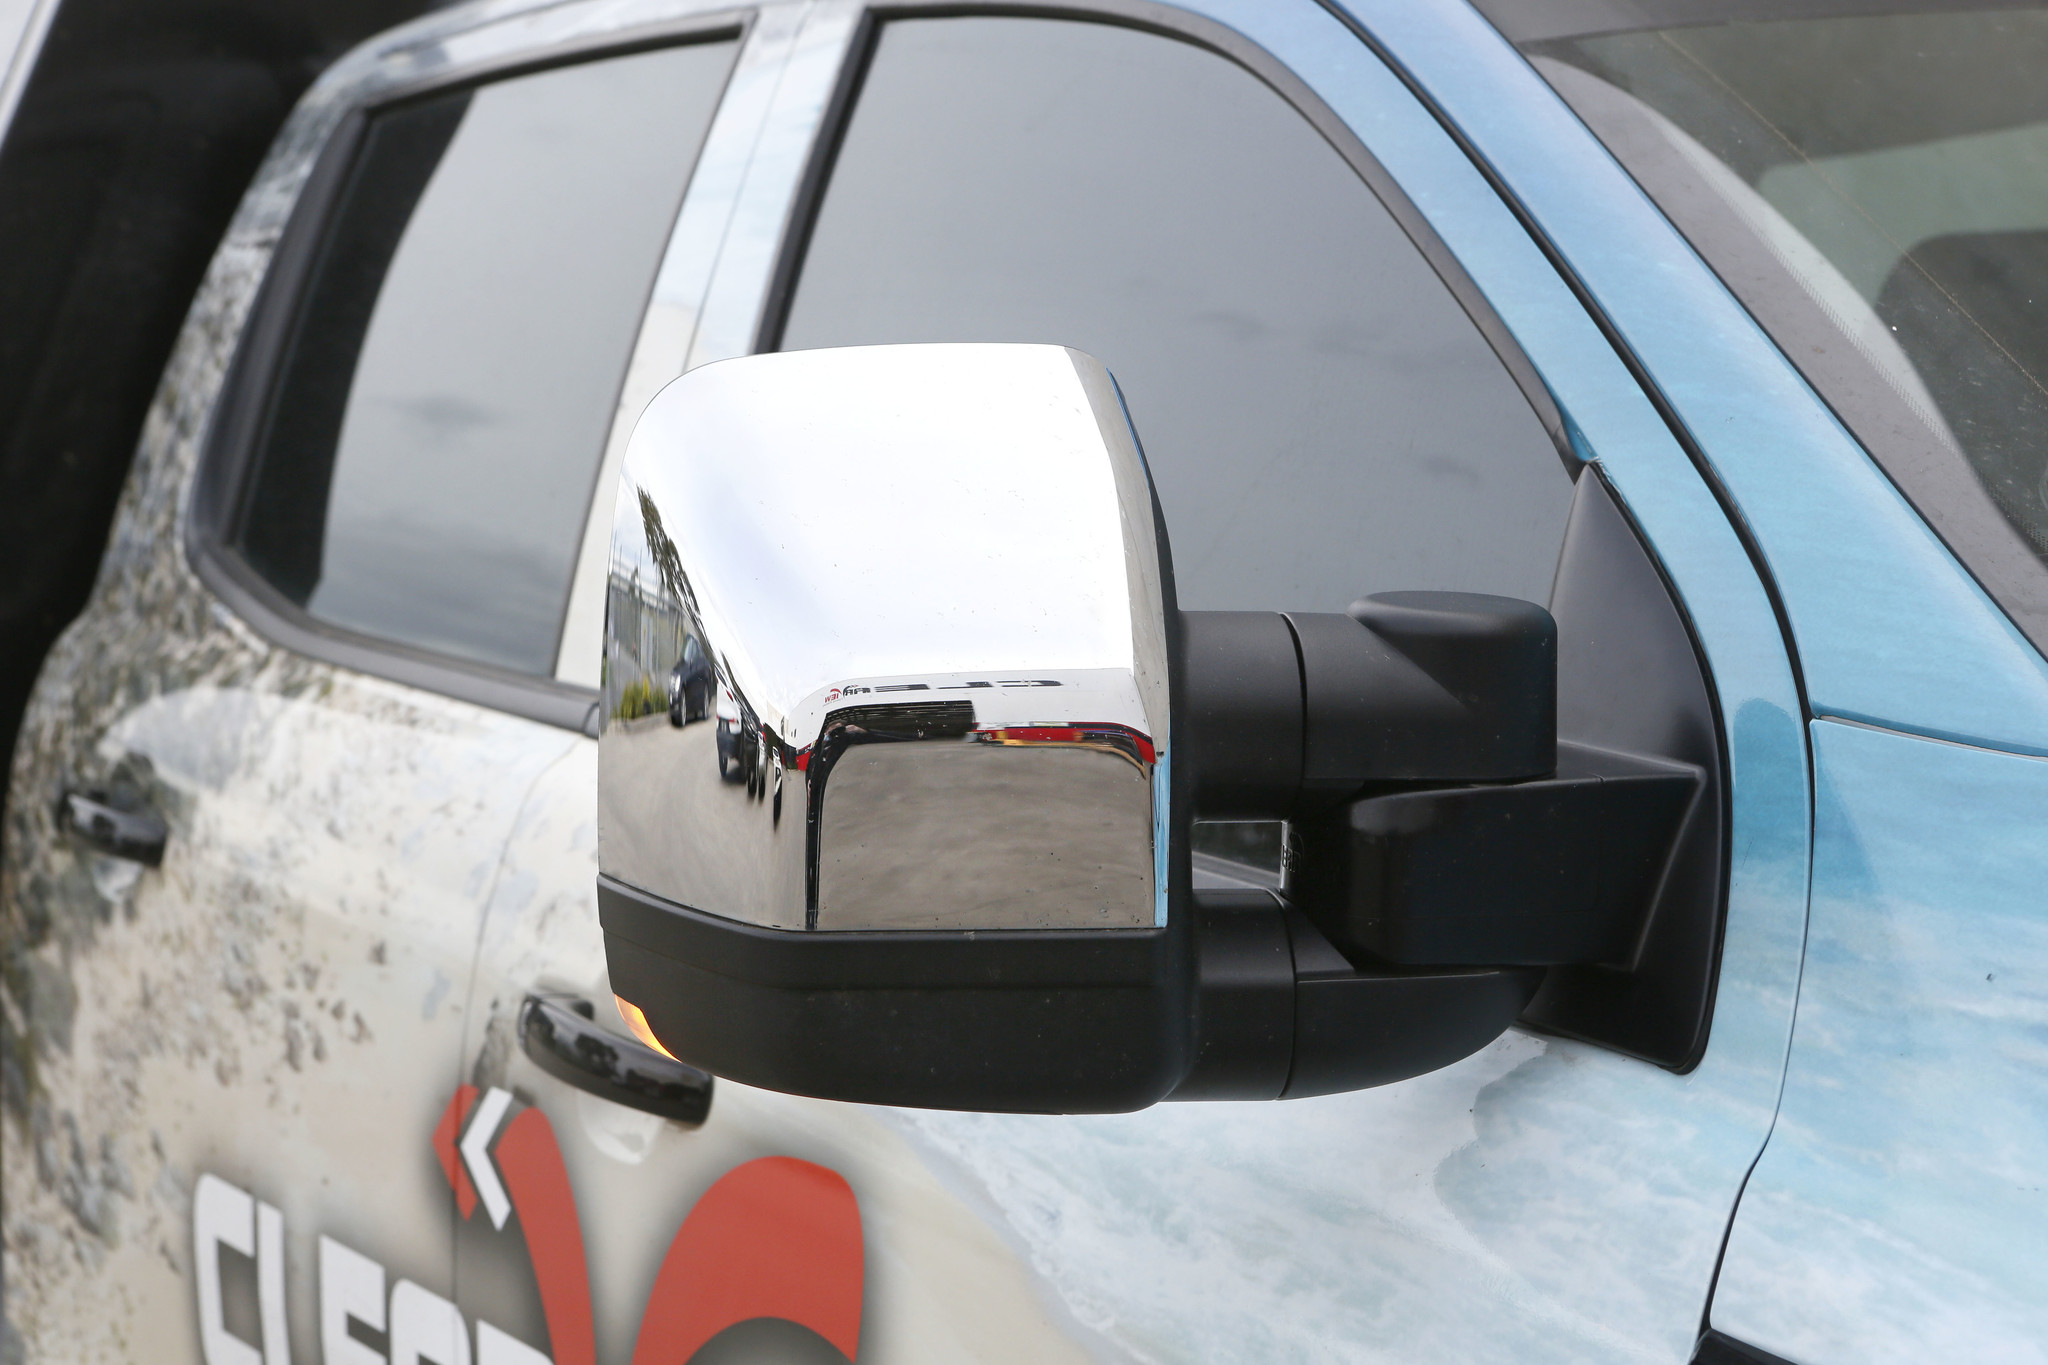 Toyota NEXT GENERATION: Clearview Towing Mirror Toyota Land Cruiser 70 series